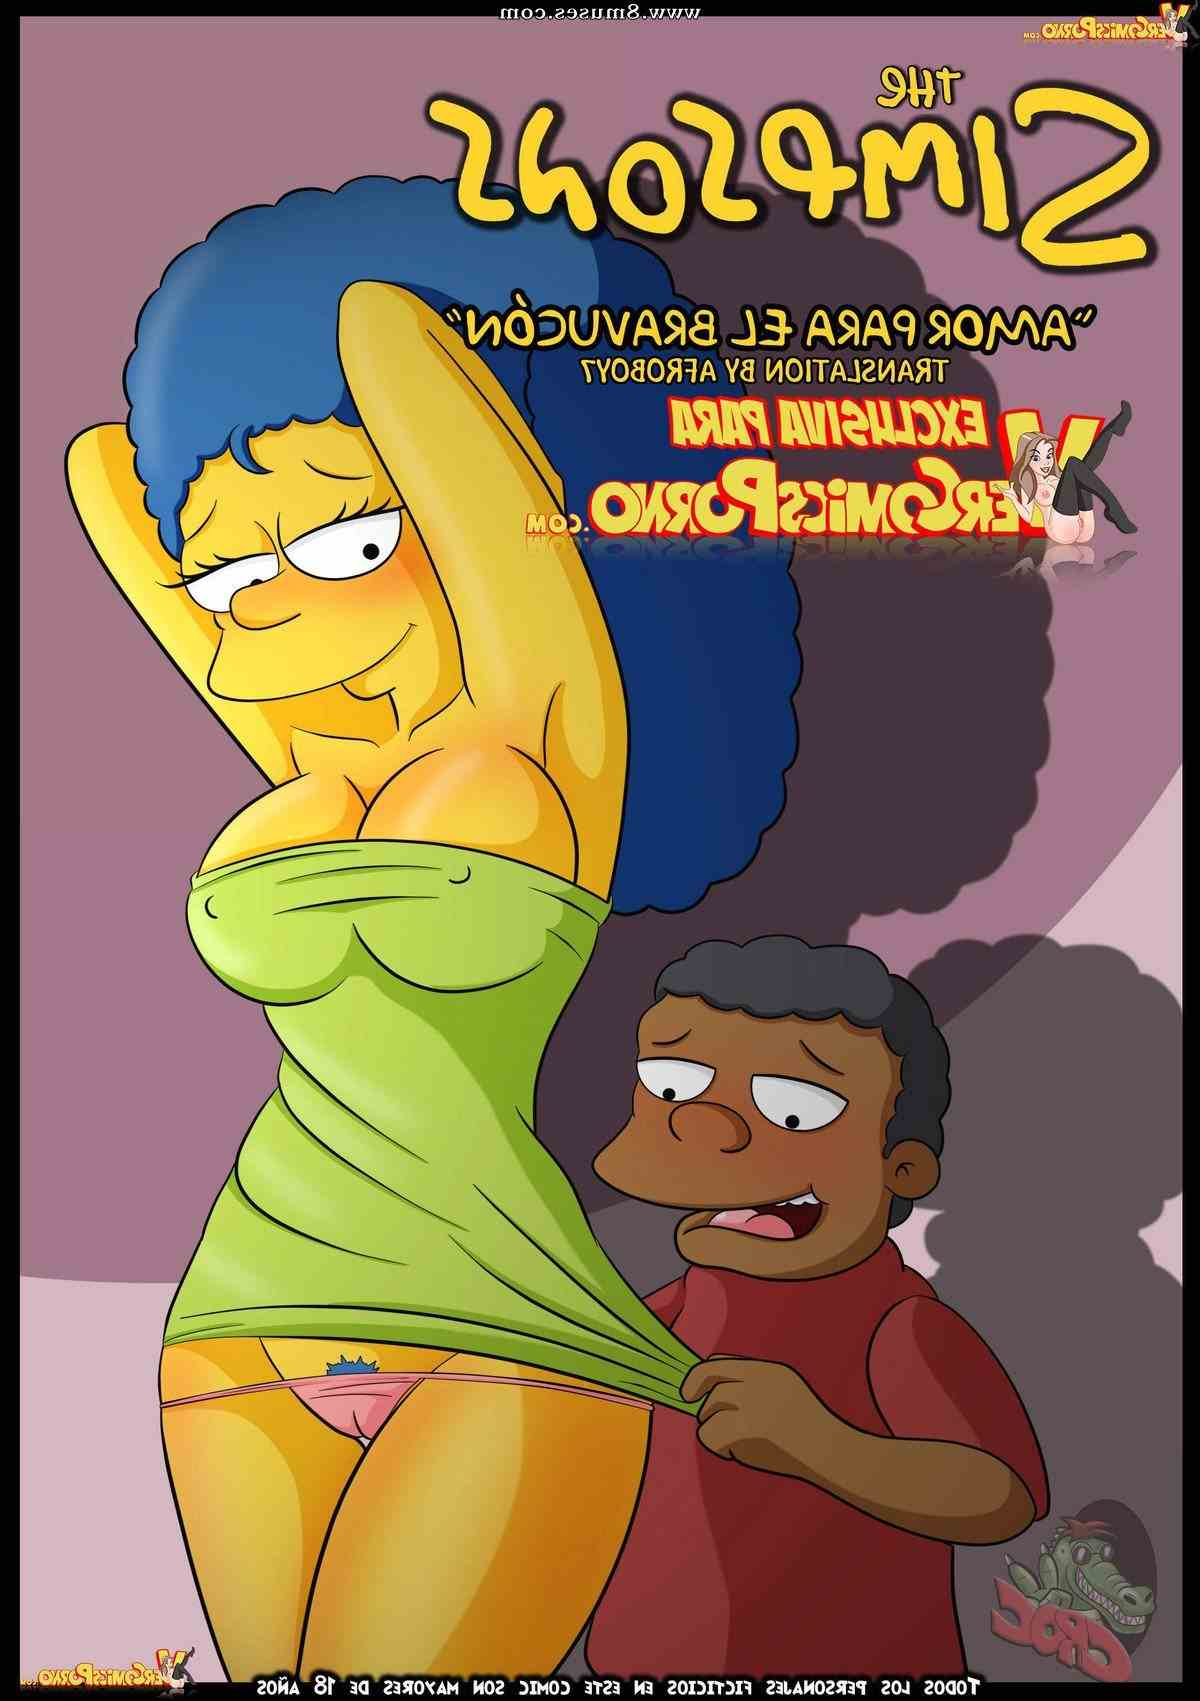 Croc-Comics/The-Simpsons-Love-for-the-Bully The_Simpsons_-_Love_for_the_Bully__8muses_-_Sex_and_Porn_Comics.jpg